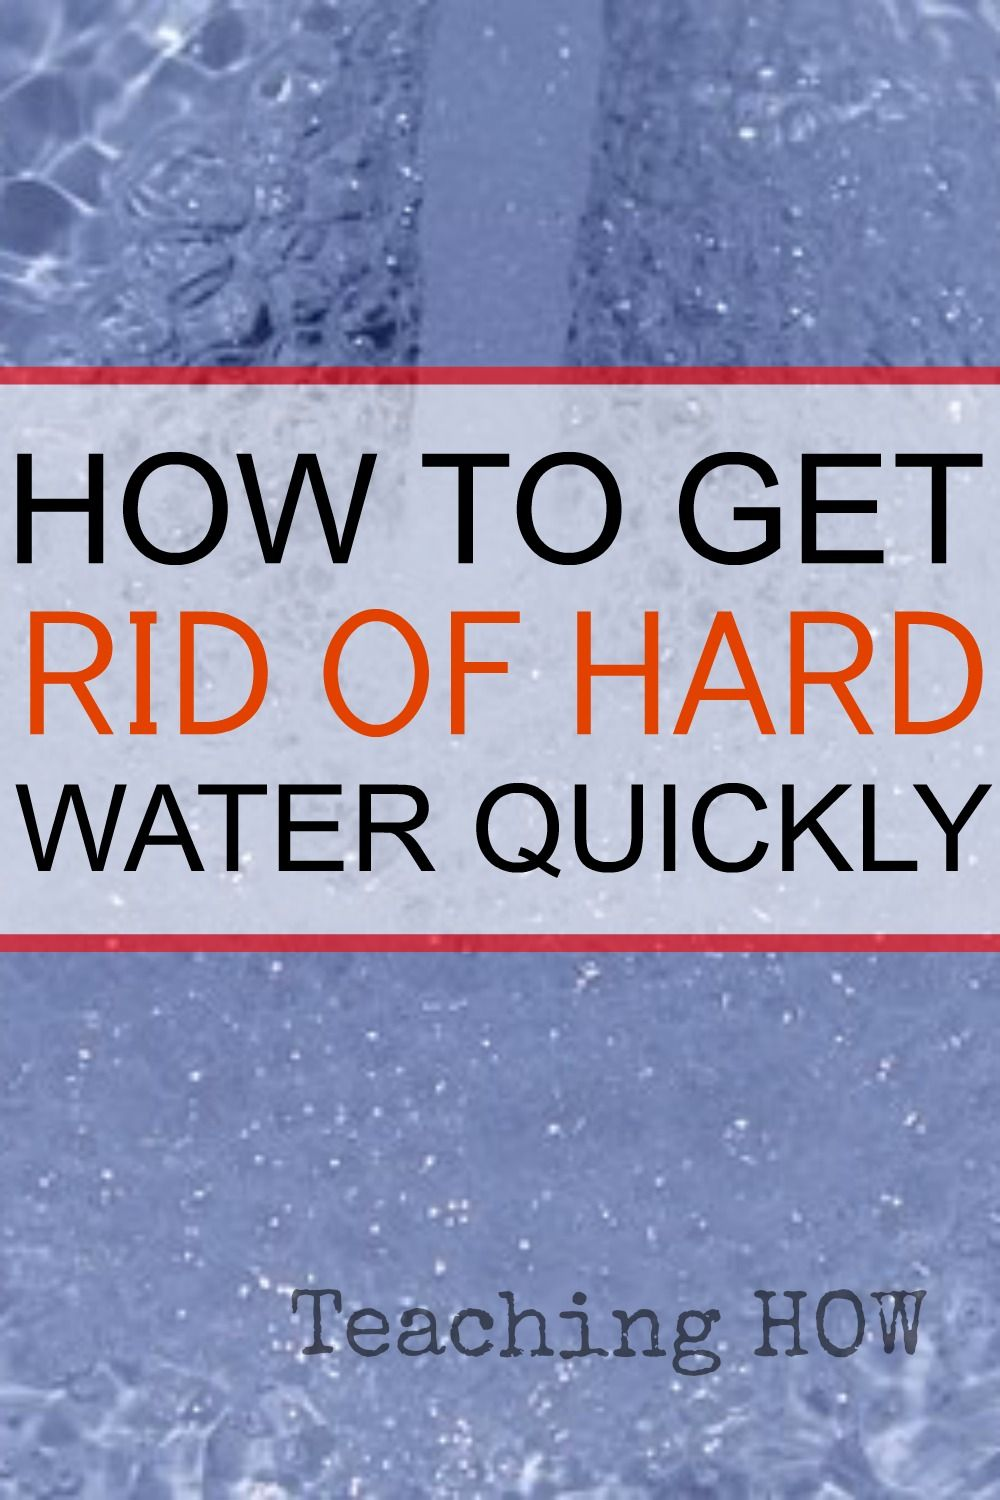 How to Get Rid of Hard Water Quickly | Hard water, Water and DIY ...